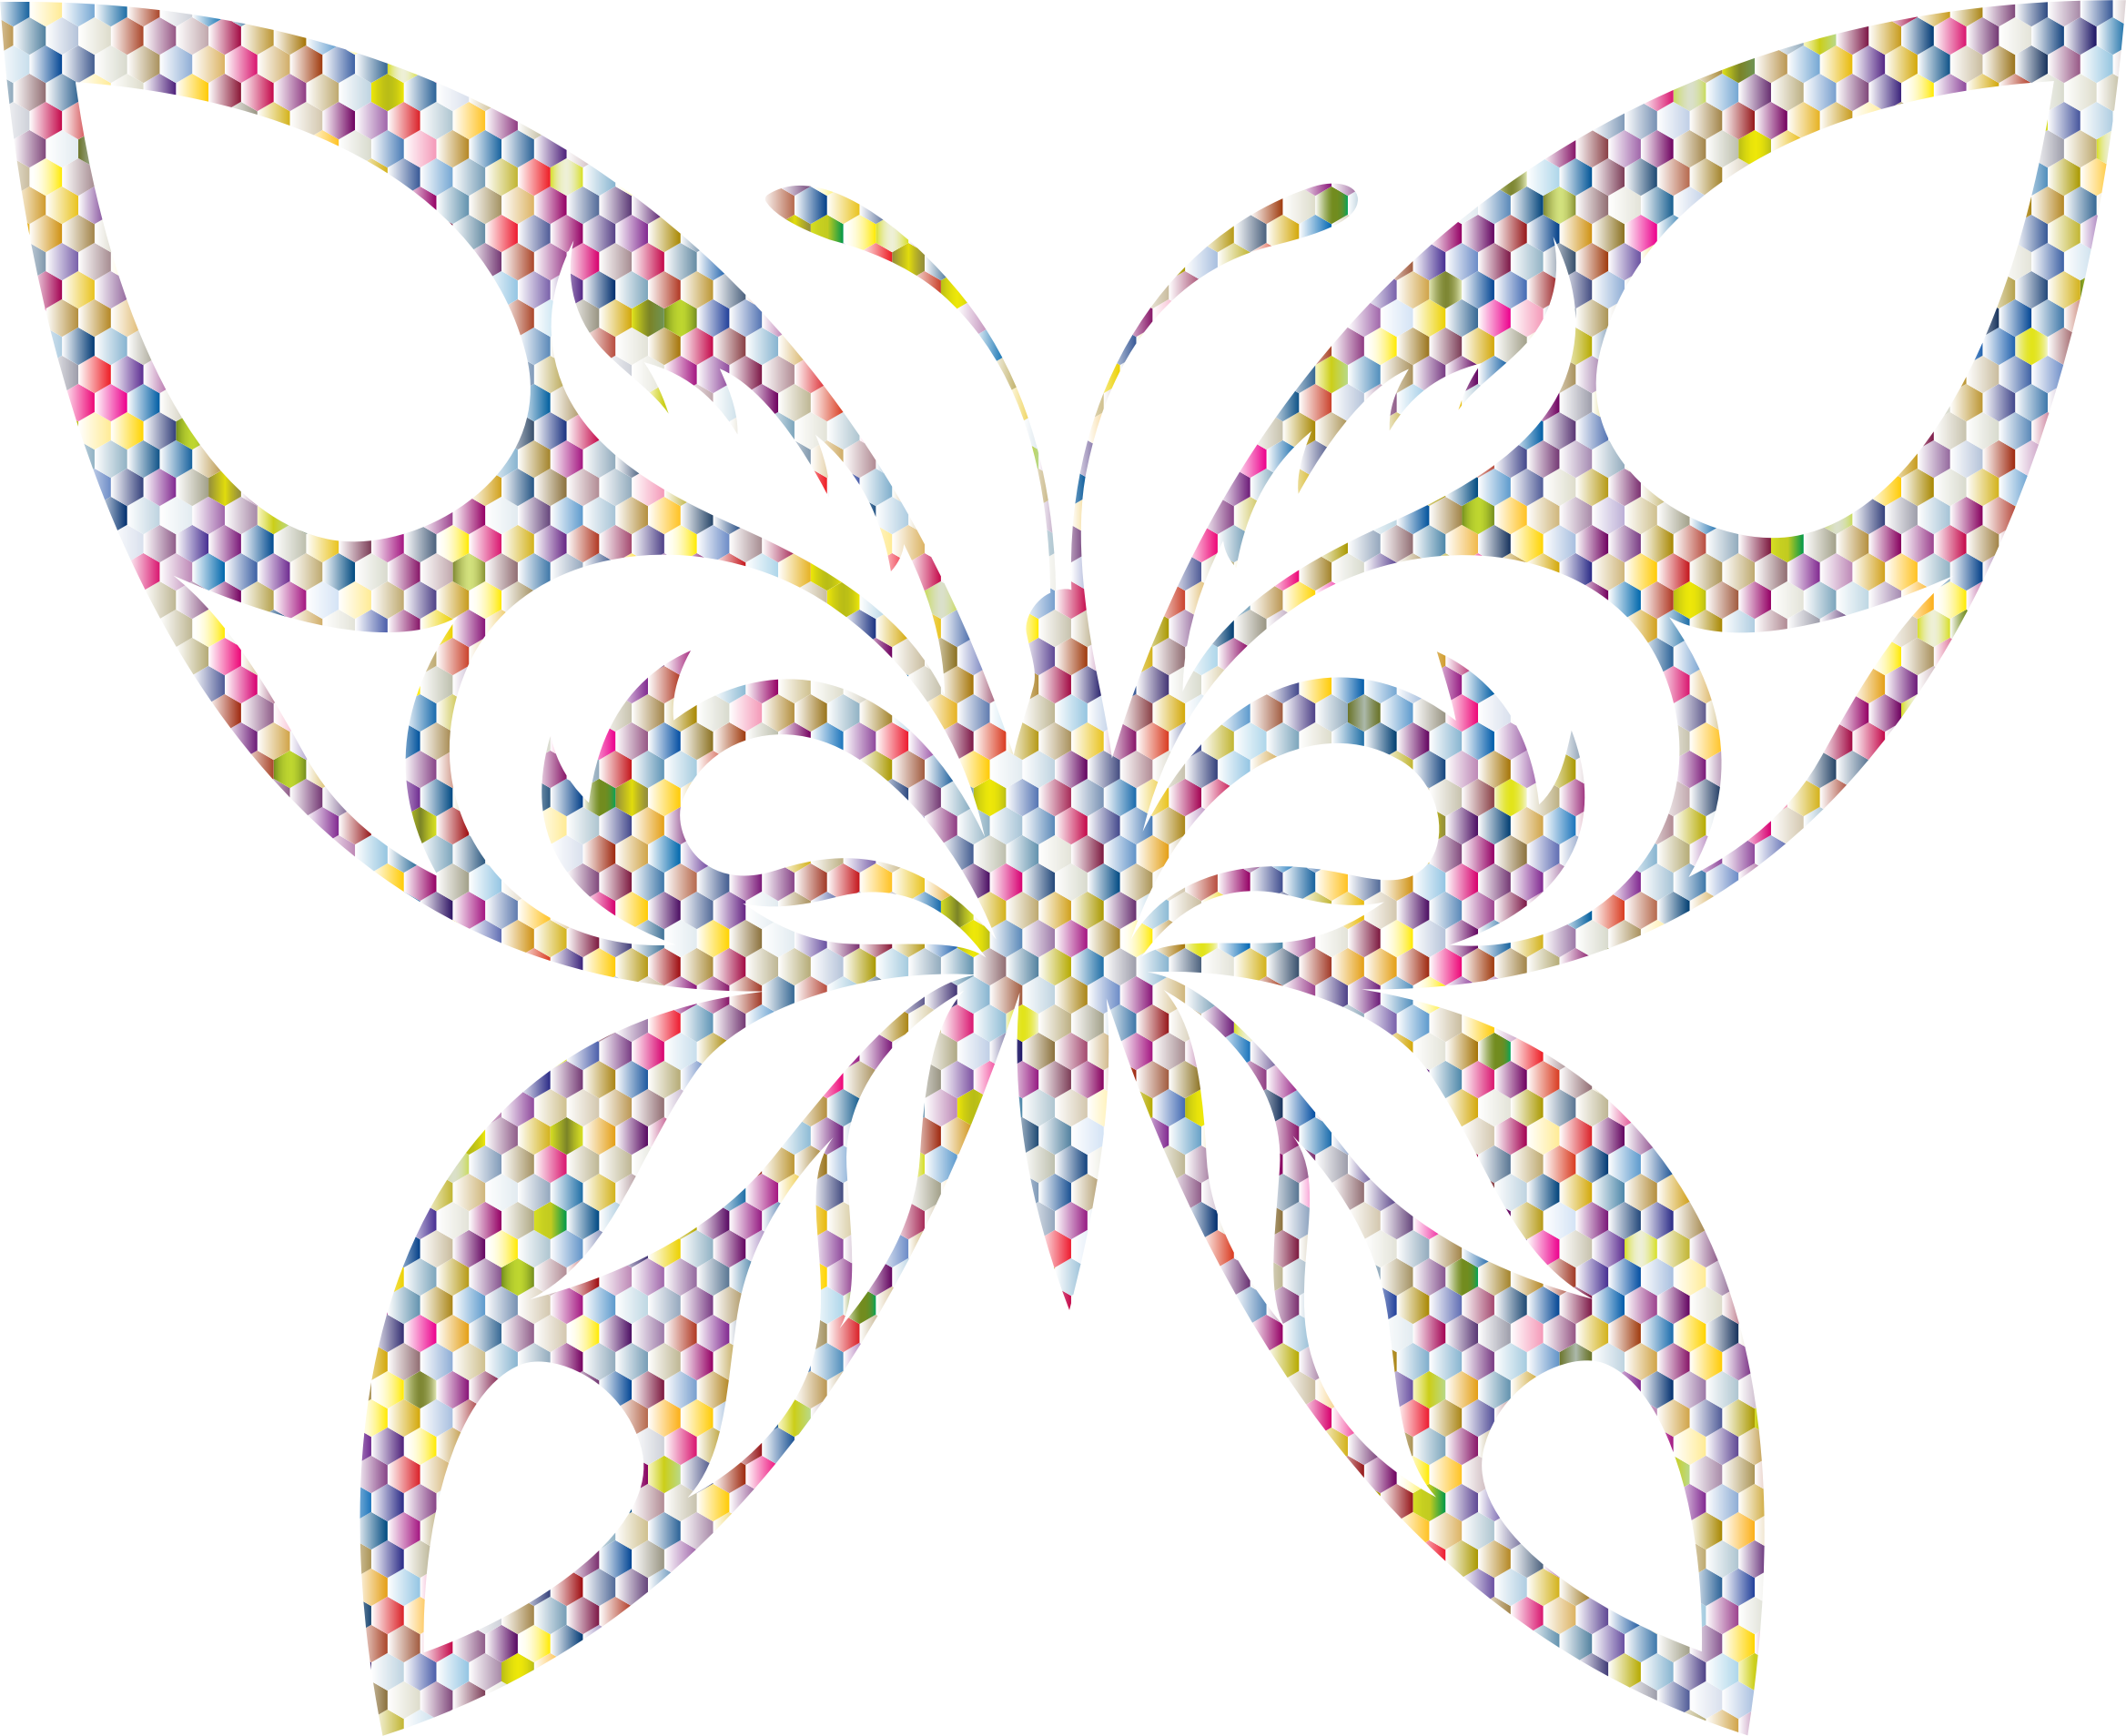 Wing clipart pastel. Prismatic hexagonal tribal butterfly